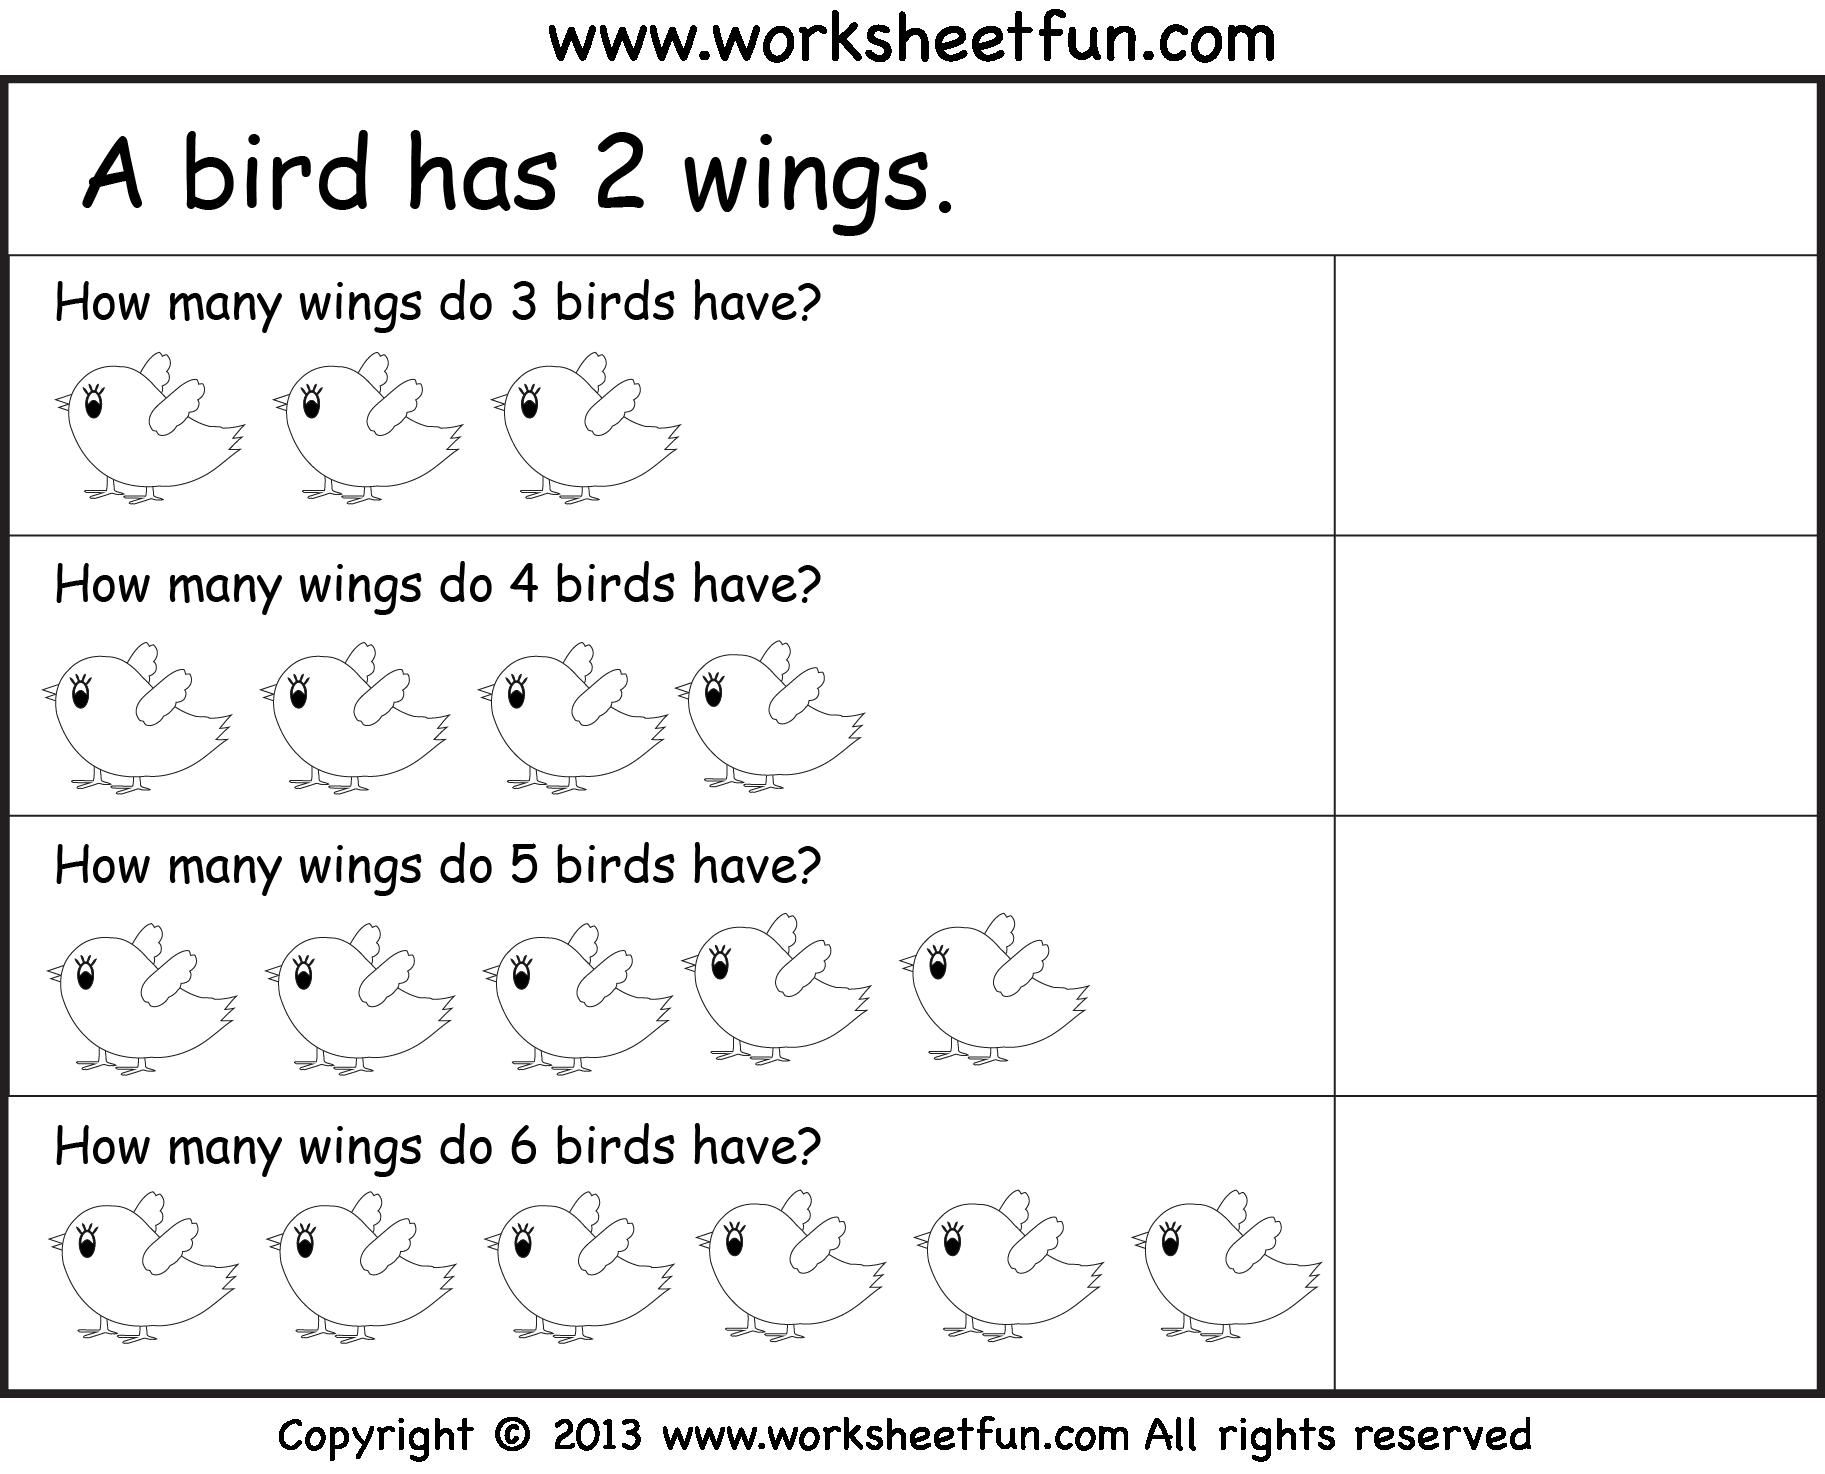 Printable Worksheets For Grade 1 Math In With Images